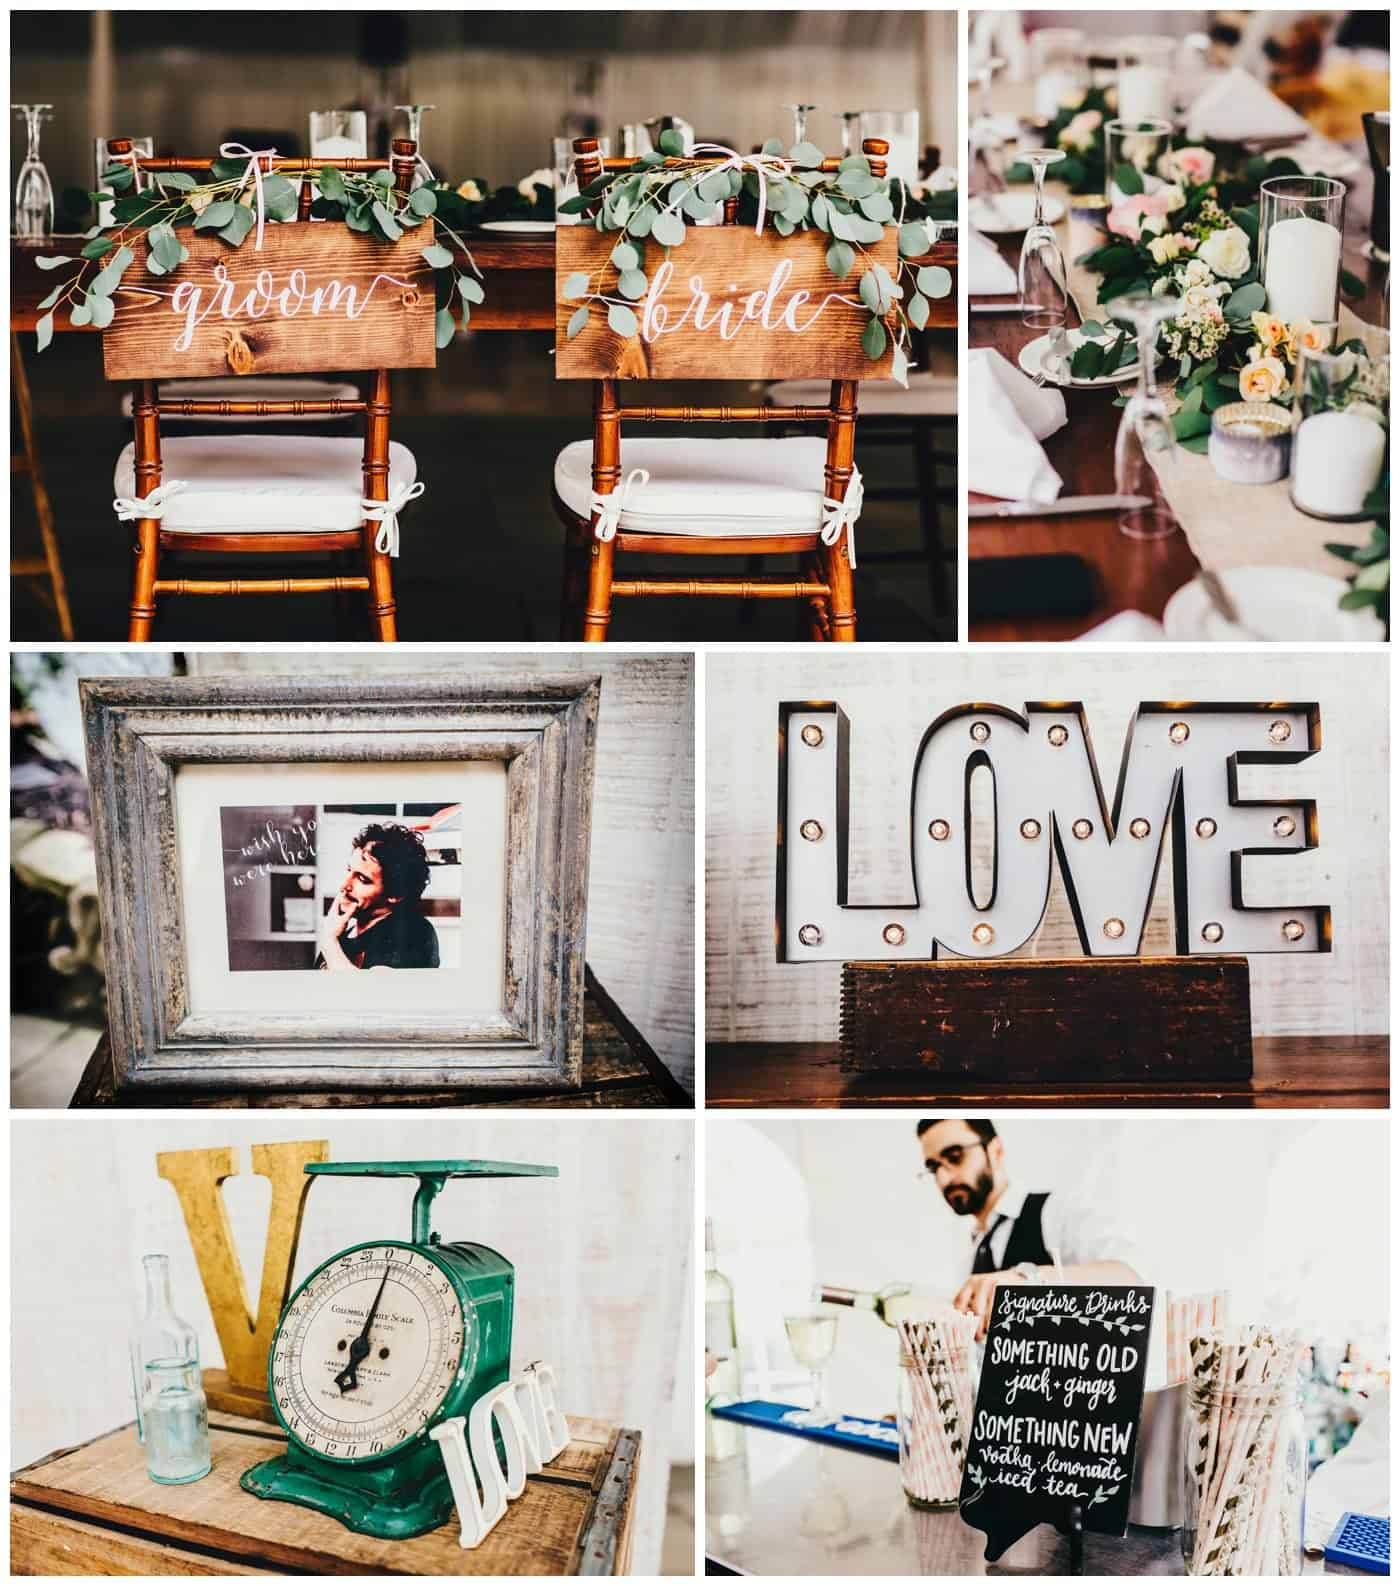 Crossed Keys Estate wedding decor